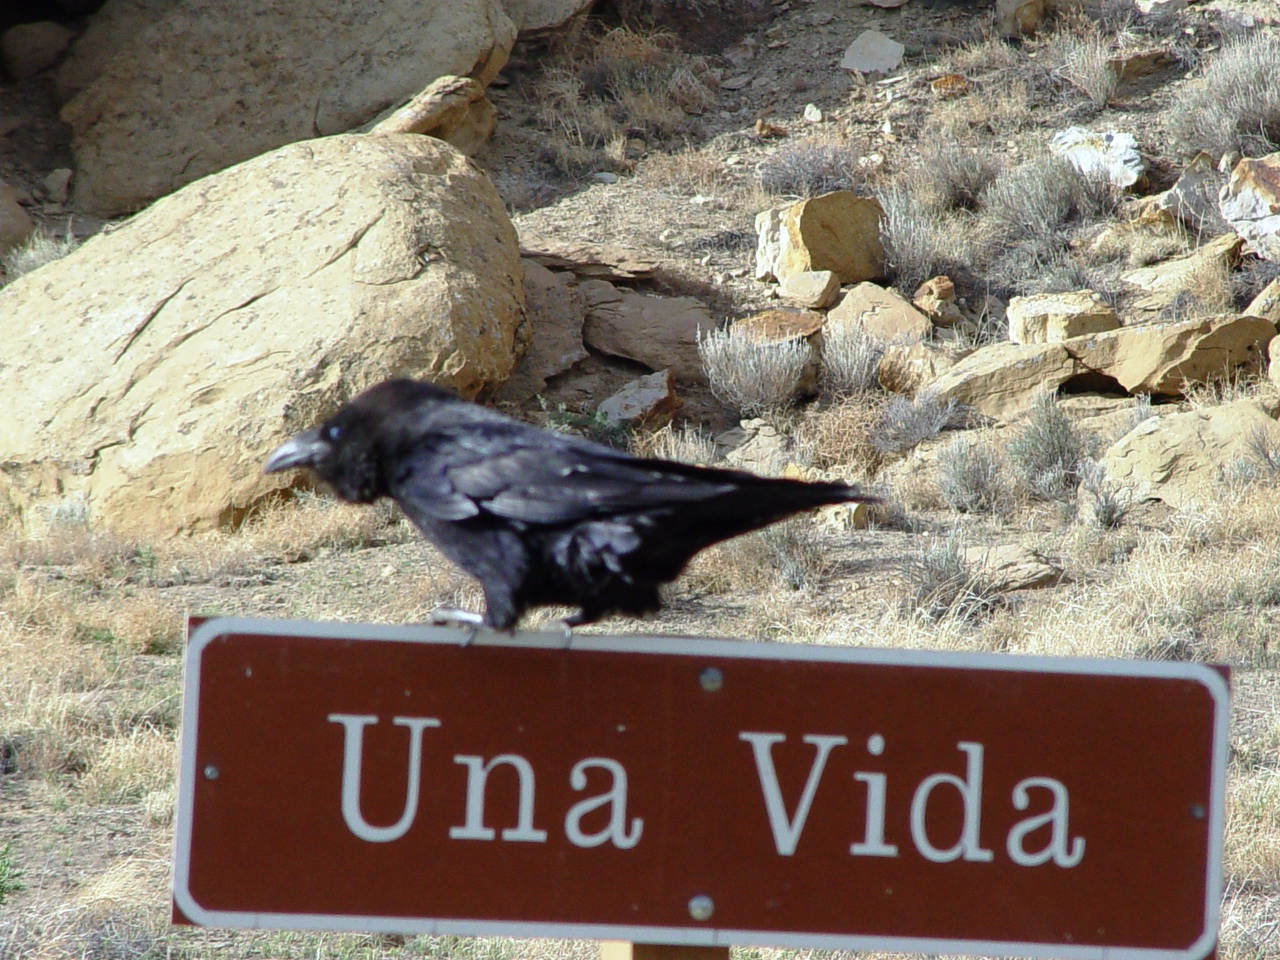 A common raven perched atop a sign, pointing the way to the Una Vida Ruin - Click for larger image (https://jamesmcgillis.com)